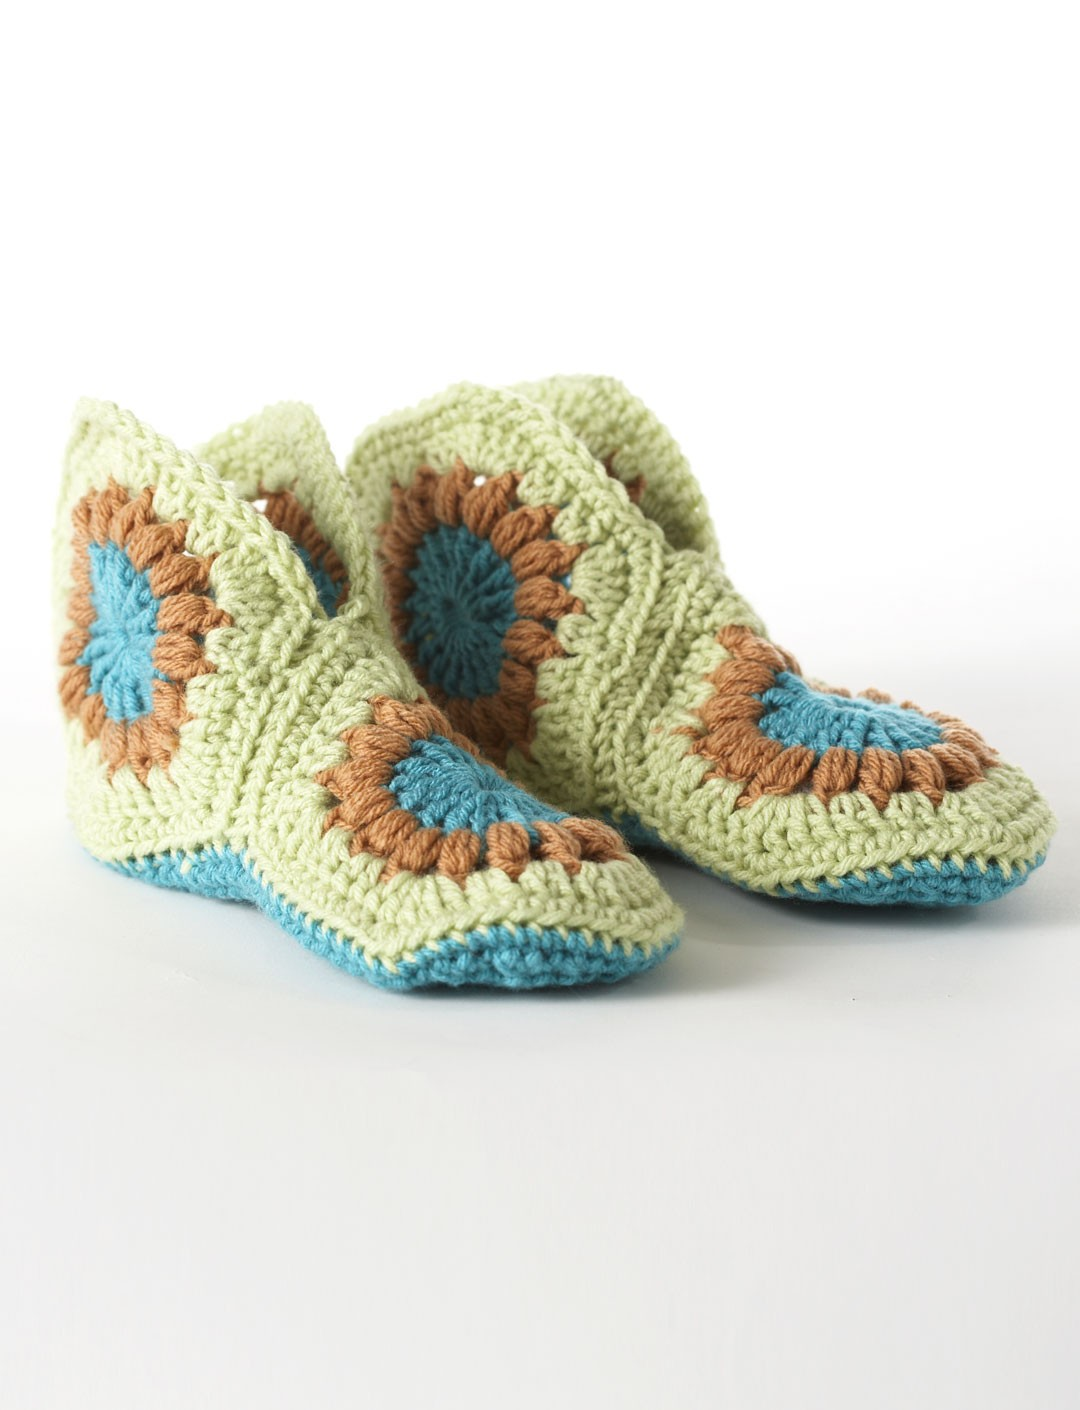 Easy Women\'s Granny Slippers Free Crochet Pattern and Video Tutorial ...